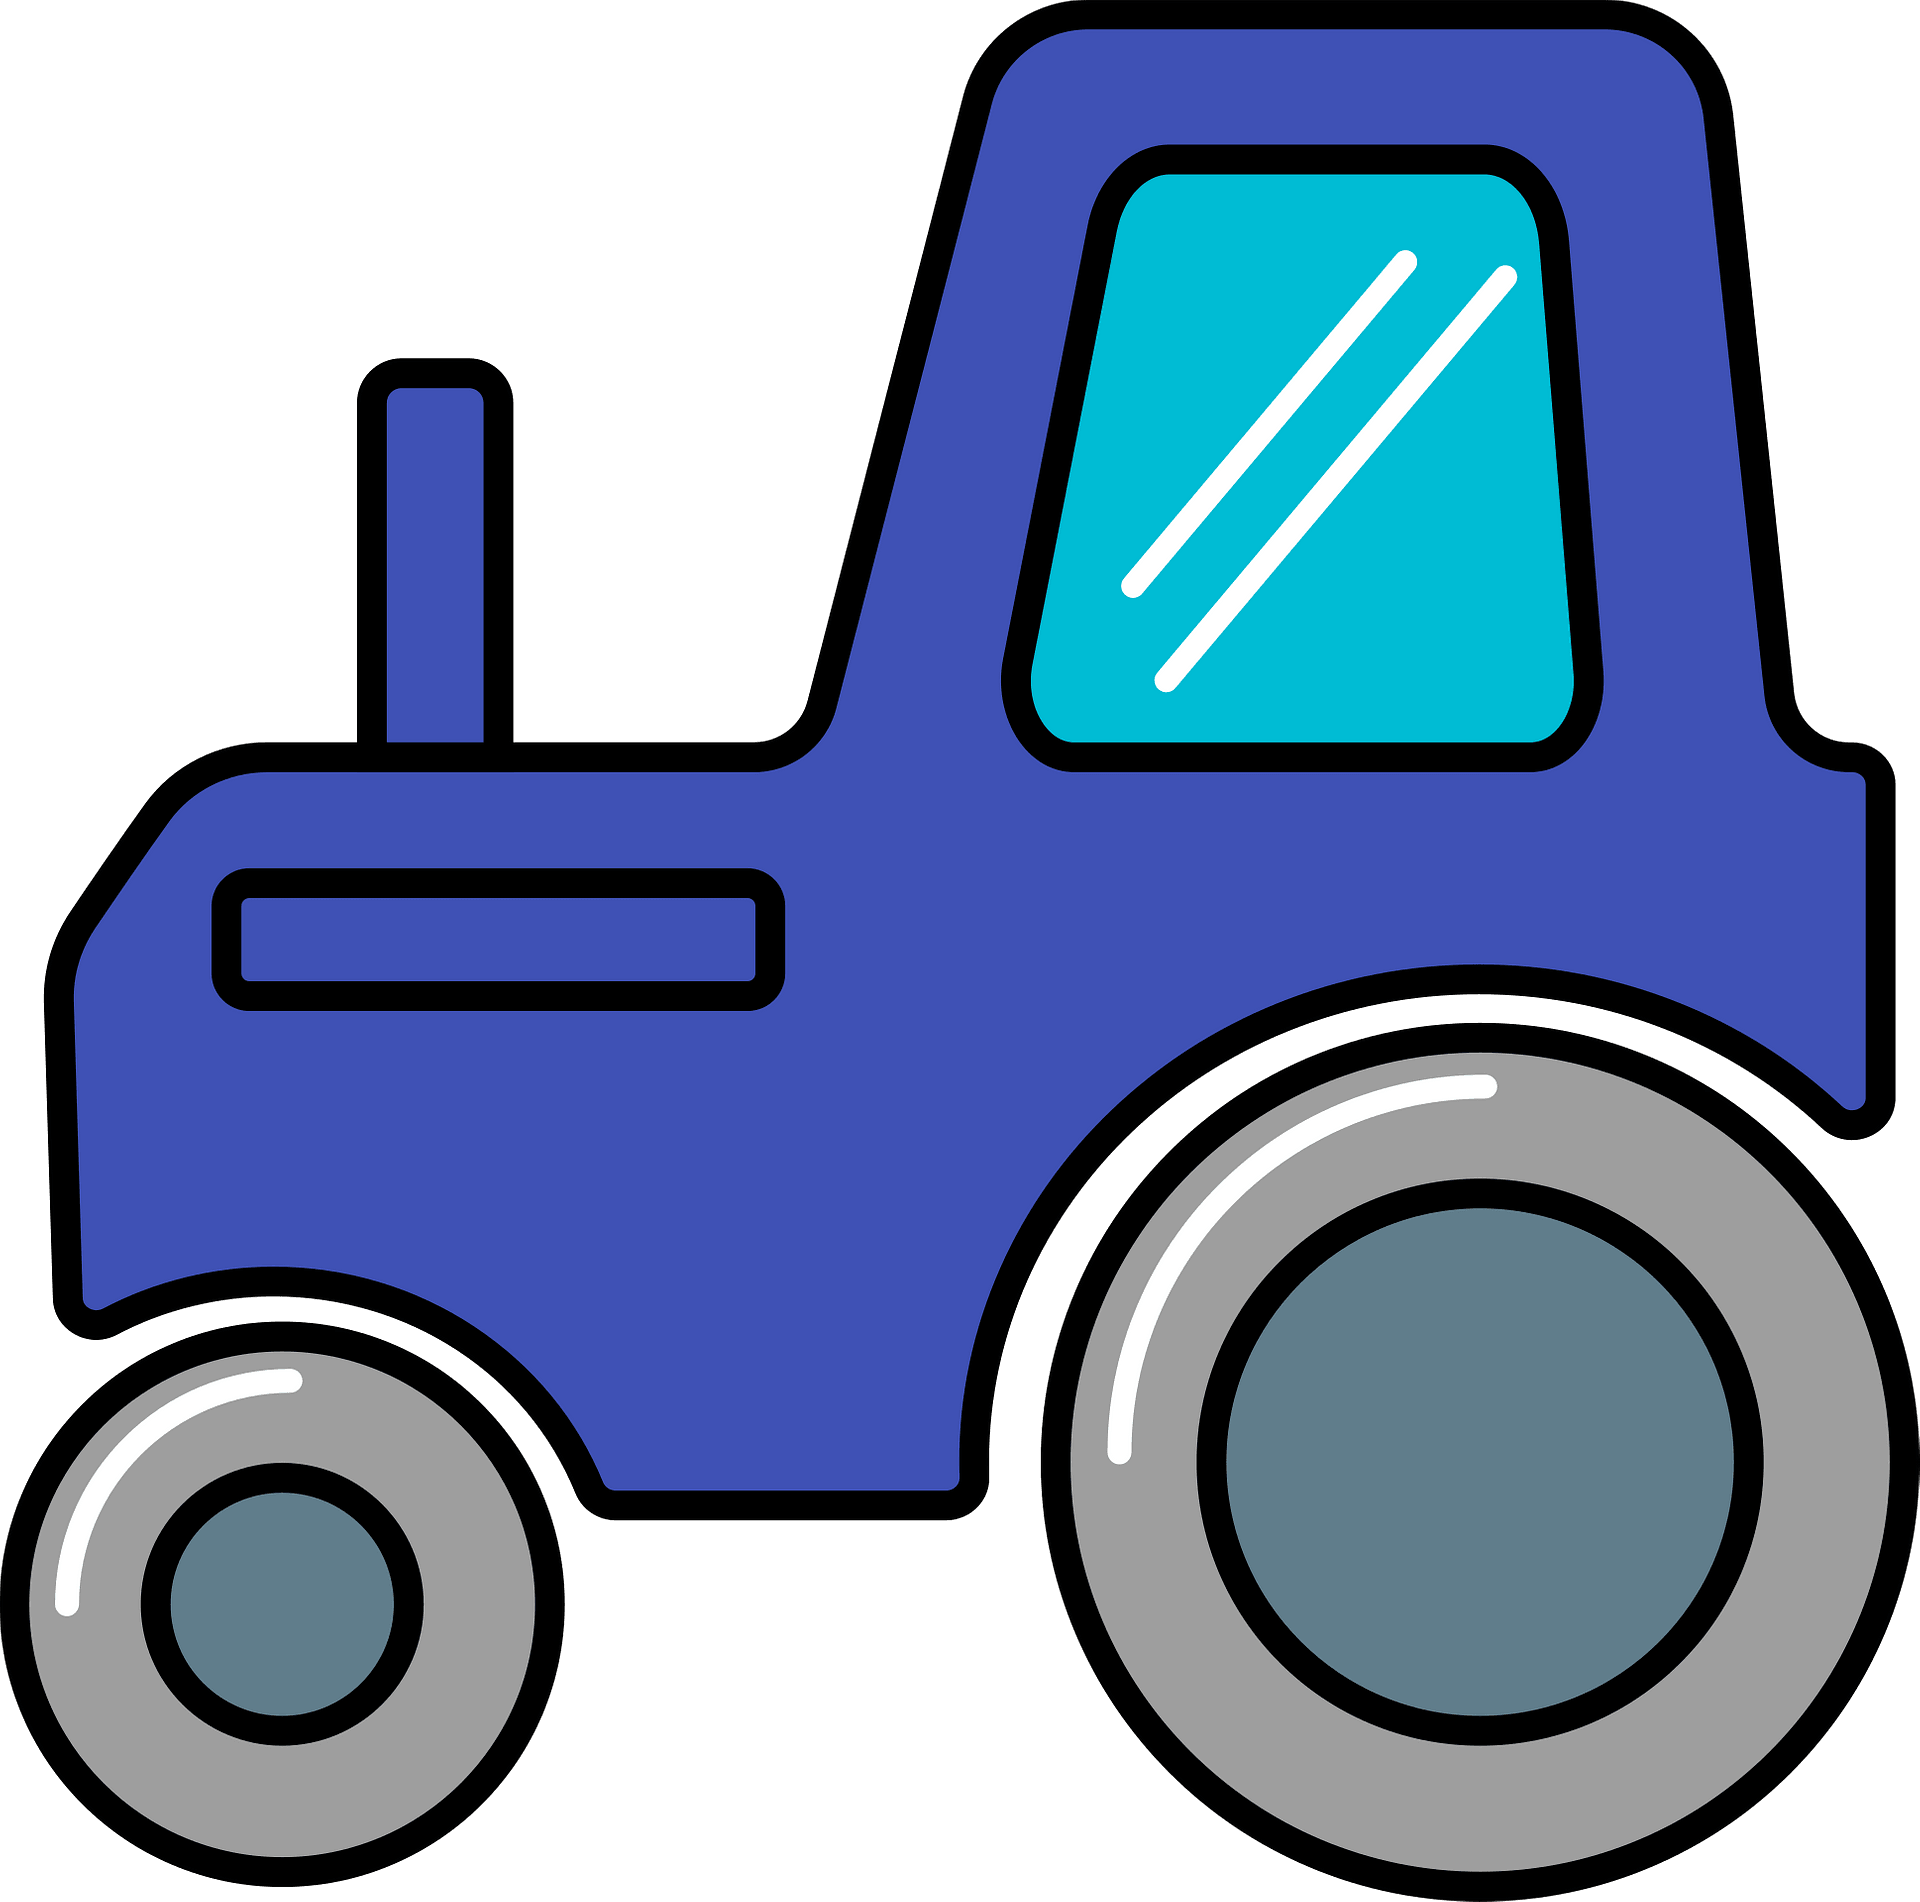 Transparent Tractor Clipart - Clipart Blue Tractor, HD Png Download -  kindpng